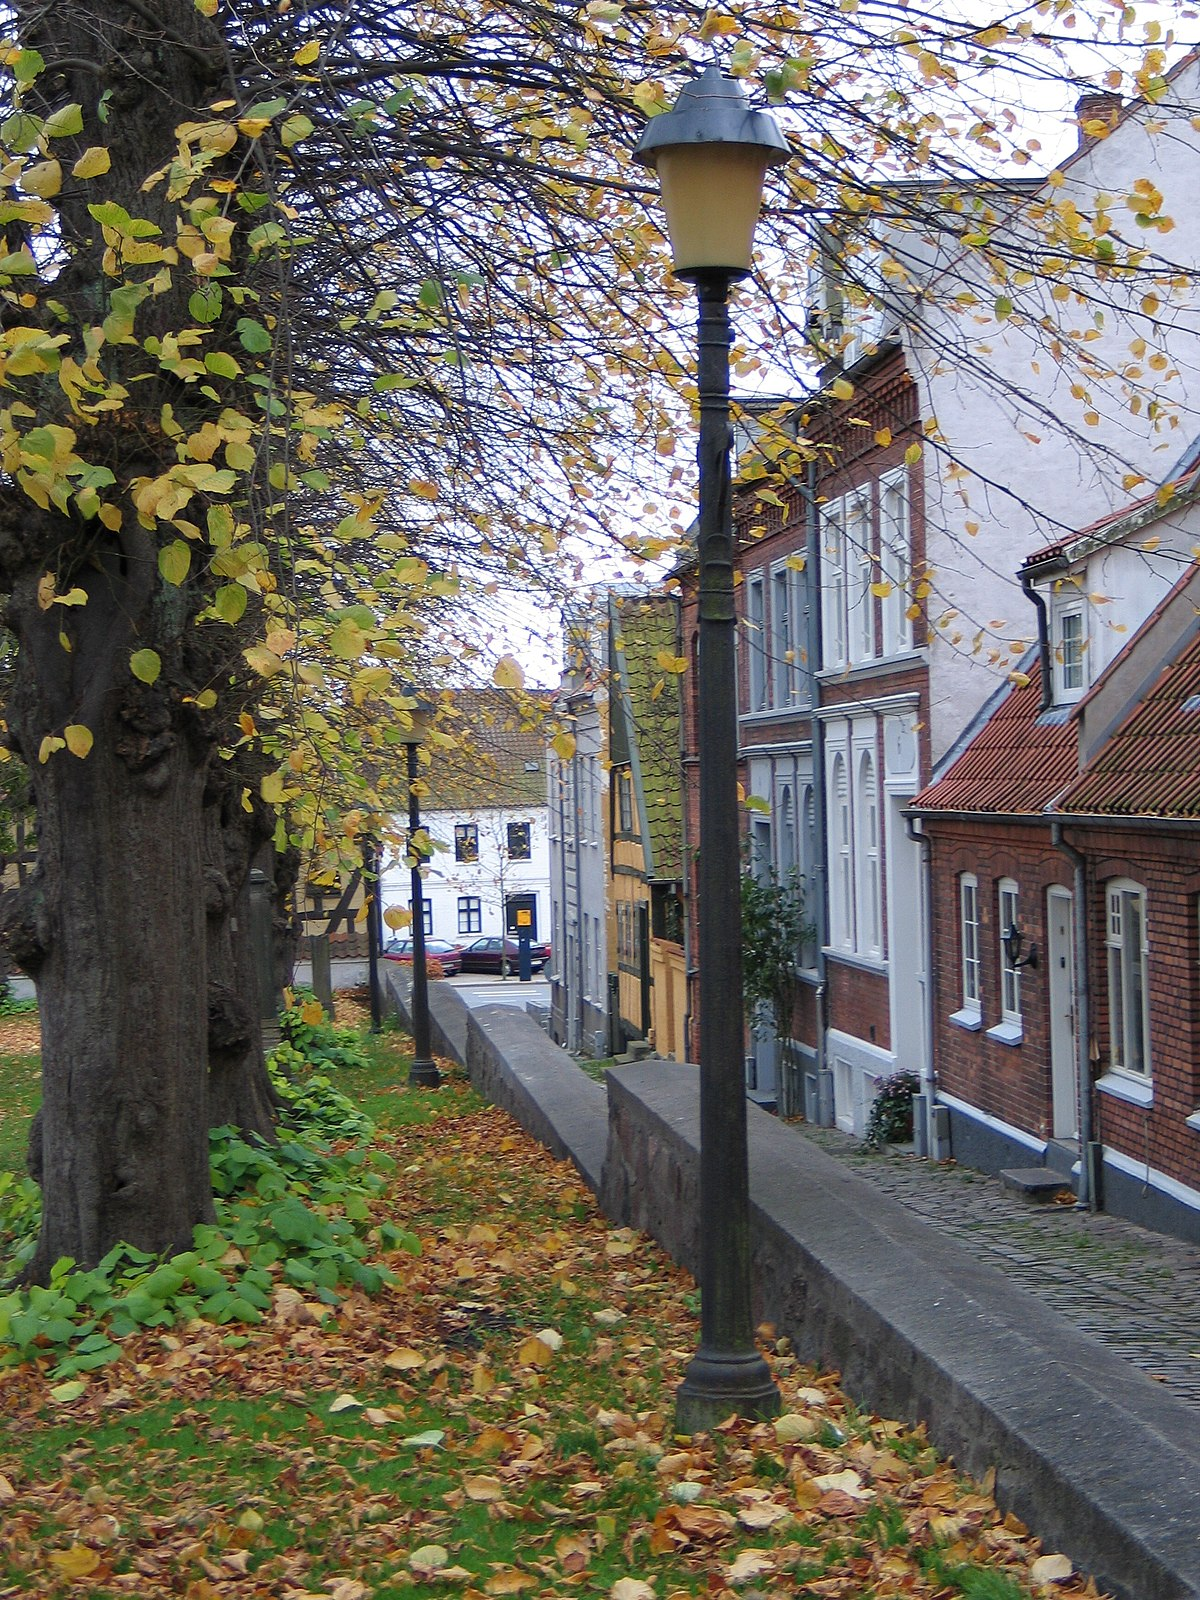 Horsens Travel Guide At Wikivoyage